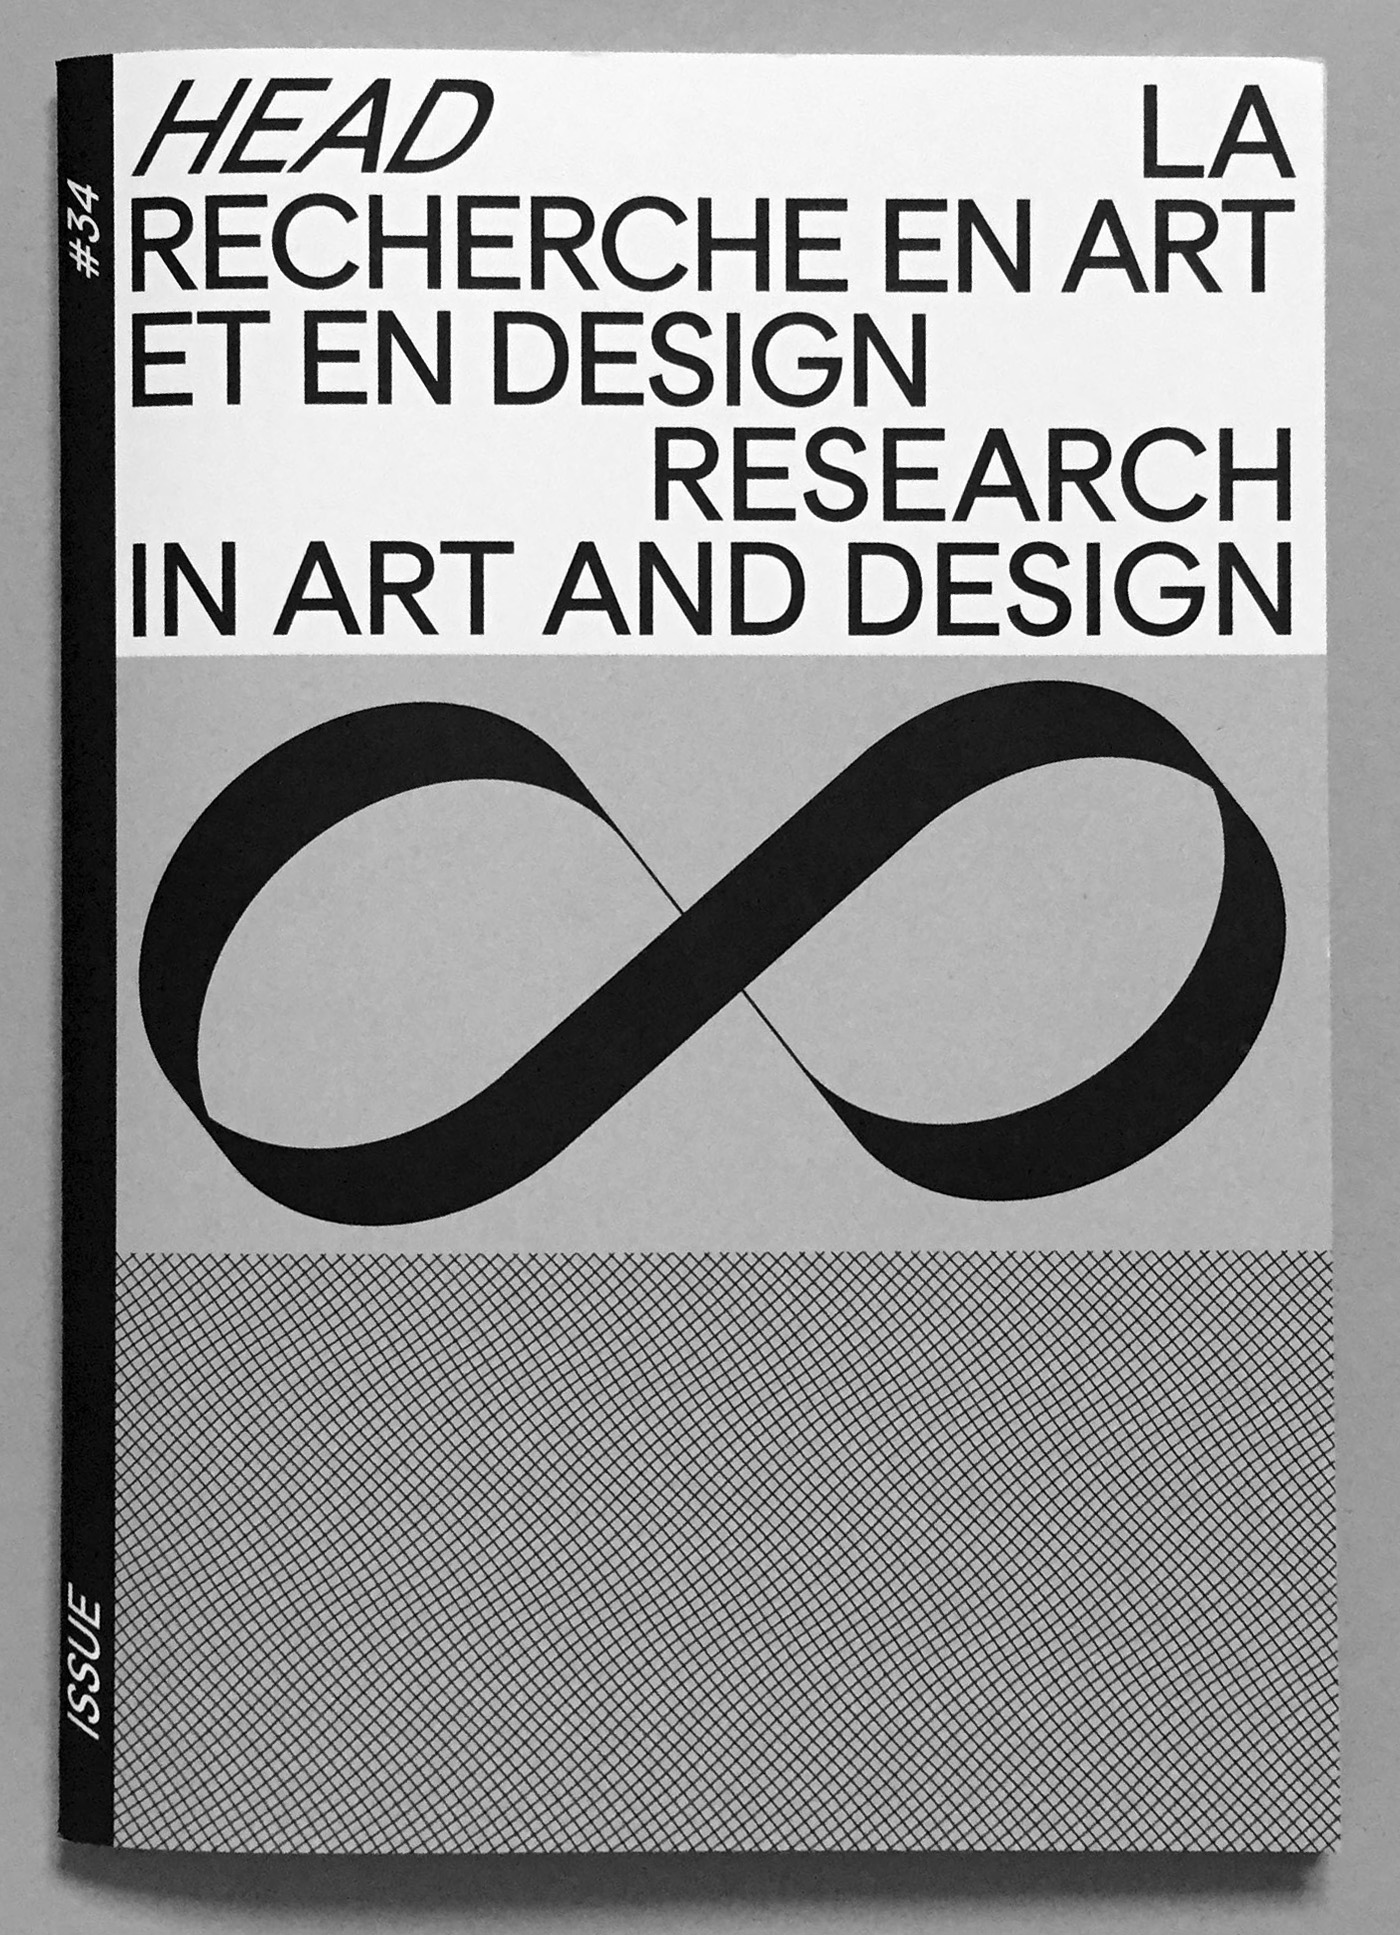 graphic design career research paper Graphic design career development becoming a graphic designer : a guide to careers in design by steven heller & teresa fernandes call number: nc1001 h45 2005 business and legal forms for graphic designers by tad crawford and eva doman bruck call number: kf390a7 c69 1999 business.